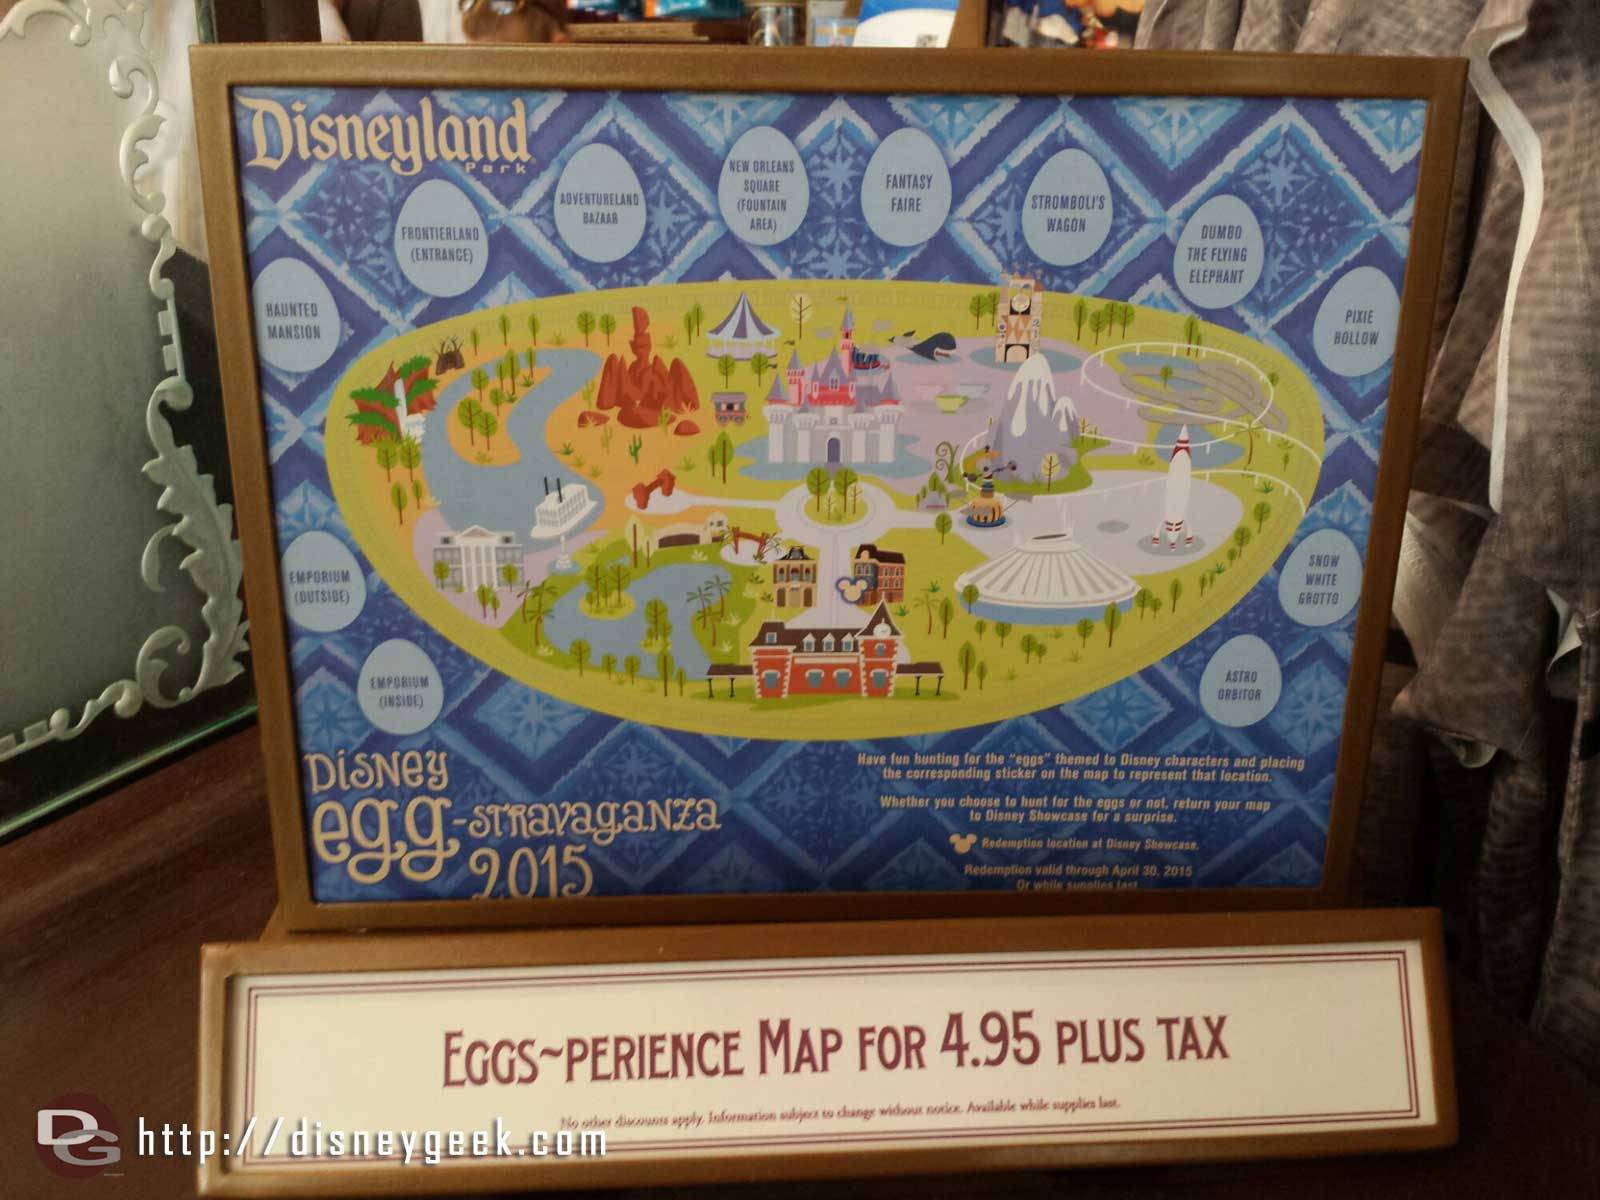 The 2015 egg-travaganza started today in both parks at #Disneyland Resort here is the #Disneyland map